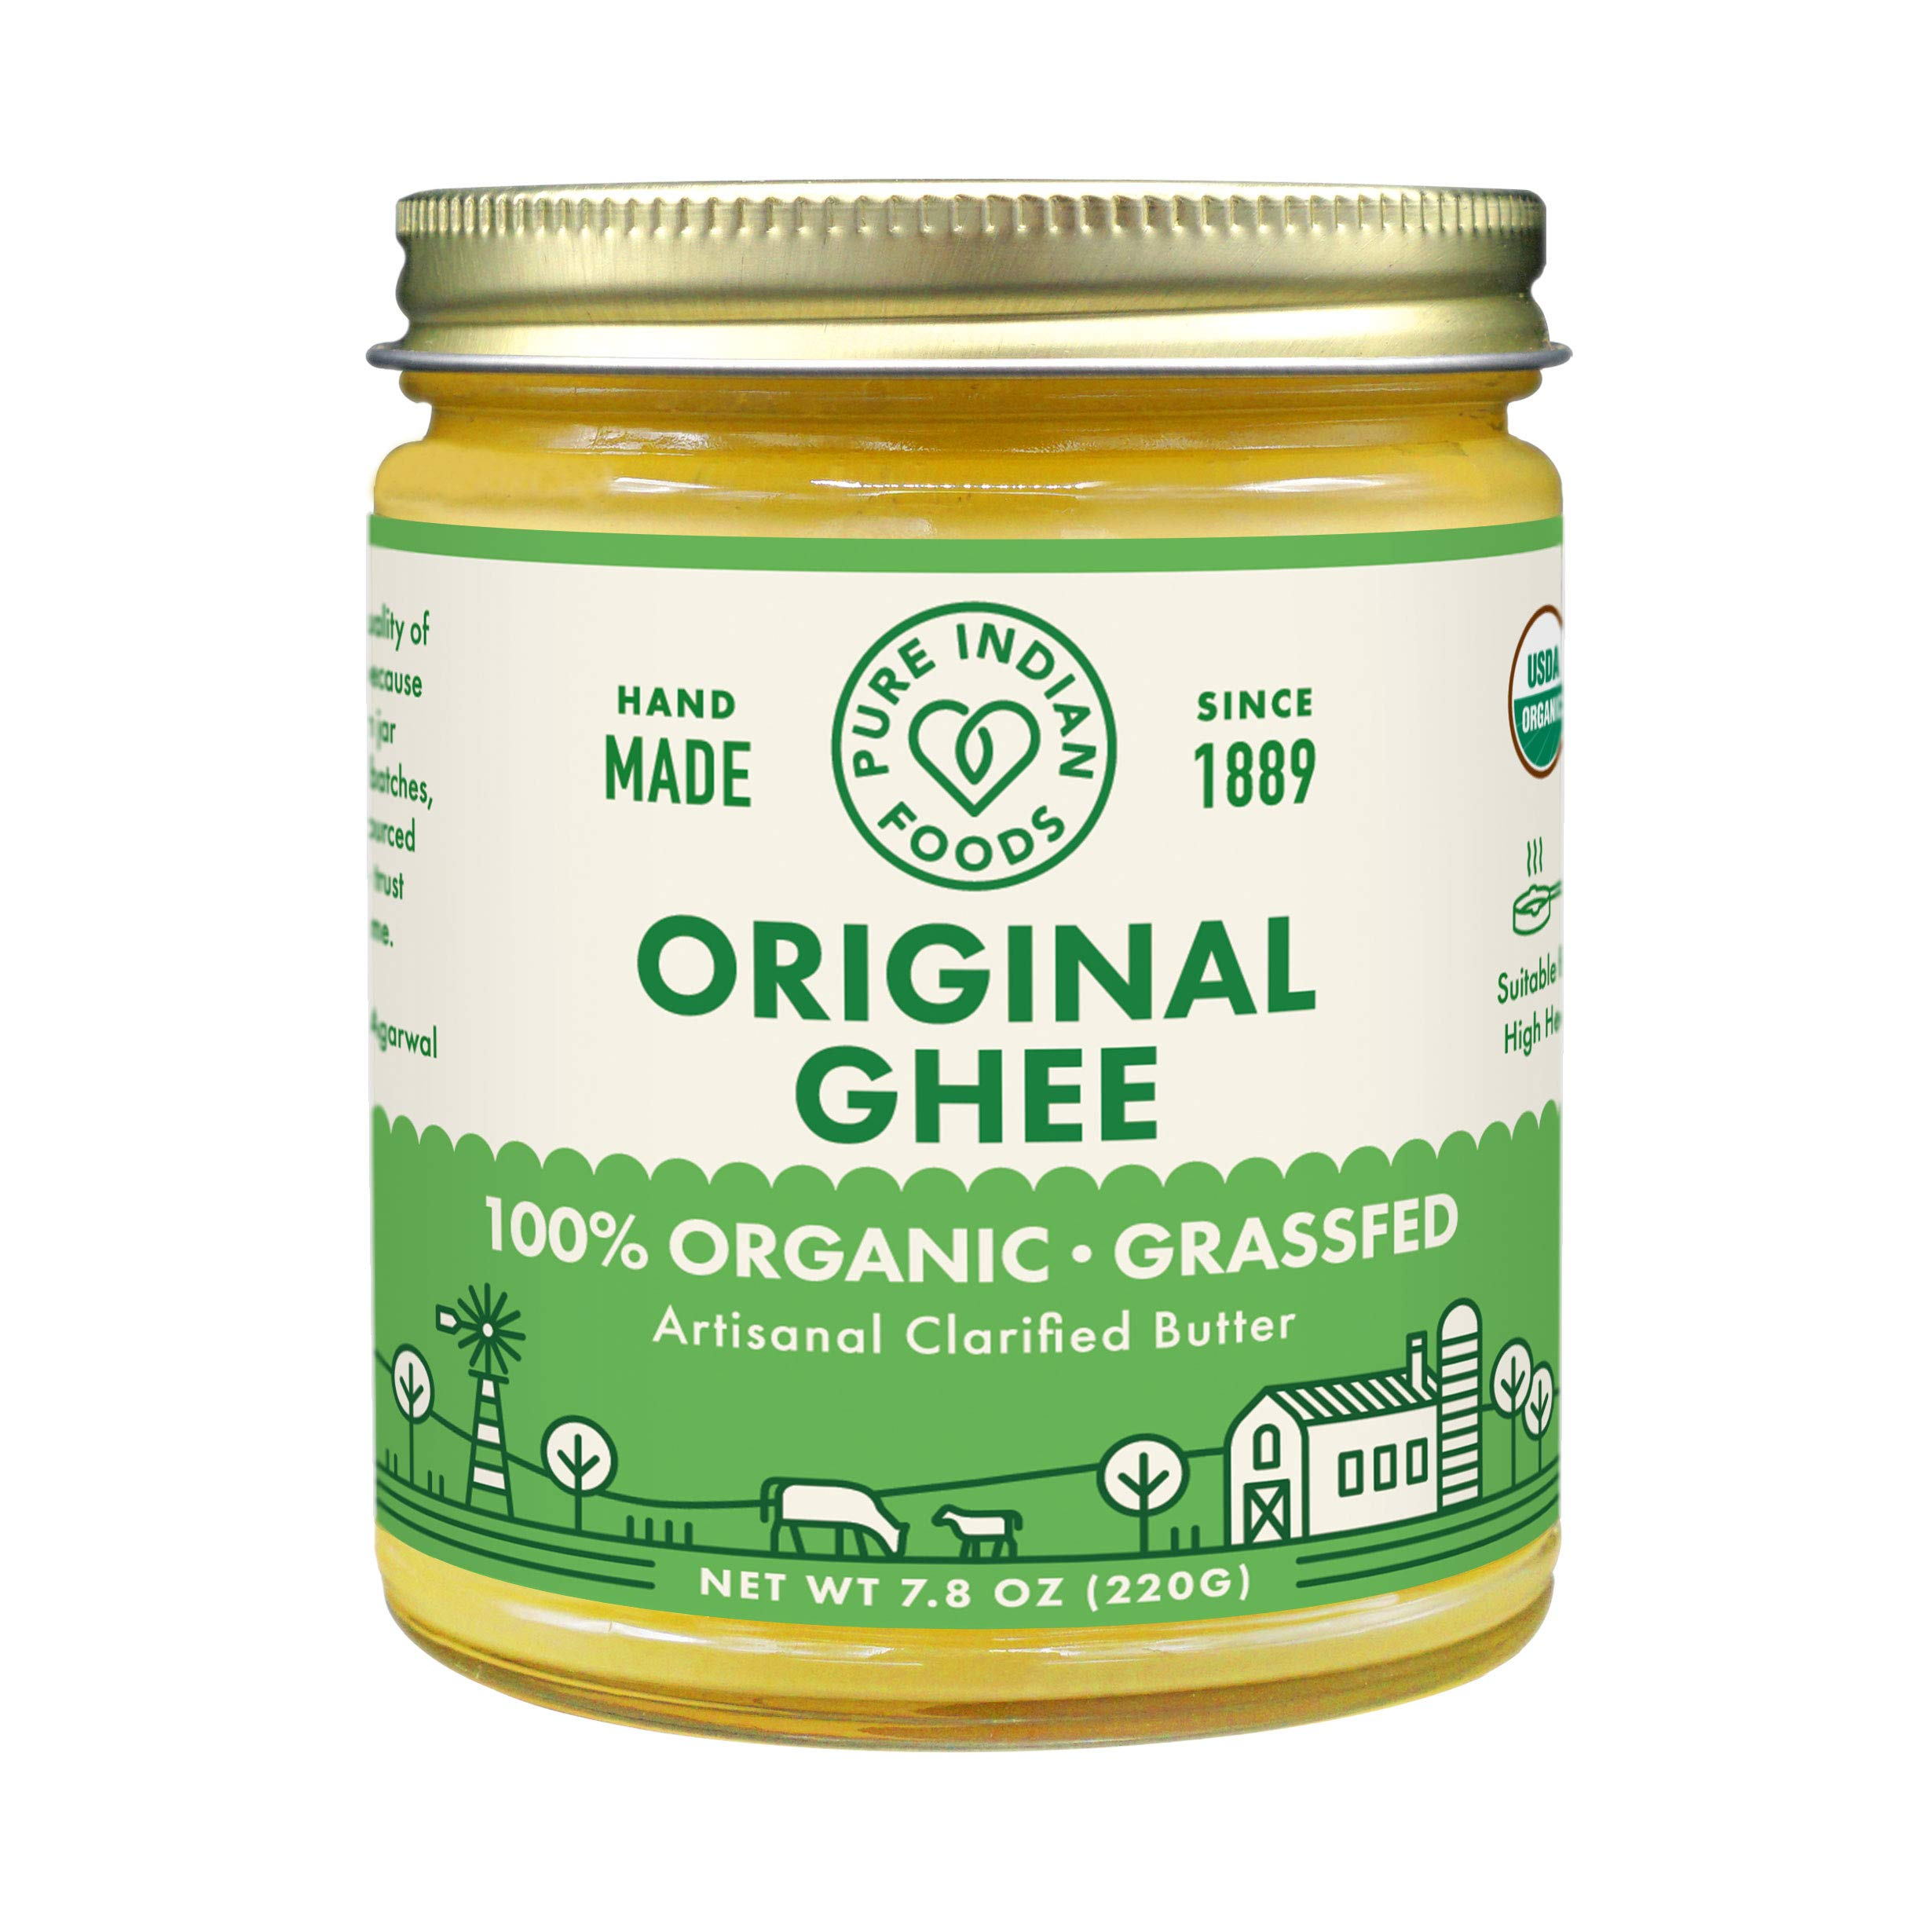 Grassfed Organic Ghee 7.8 Oz - Pure Indian Foods Brand (2-Pack) by Pure Indian Foods (Image #1)